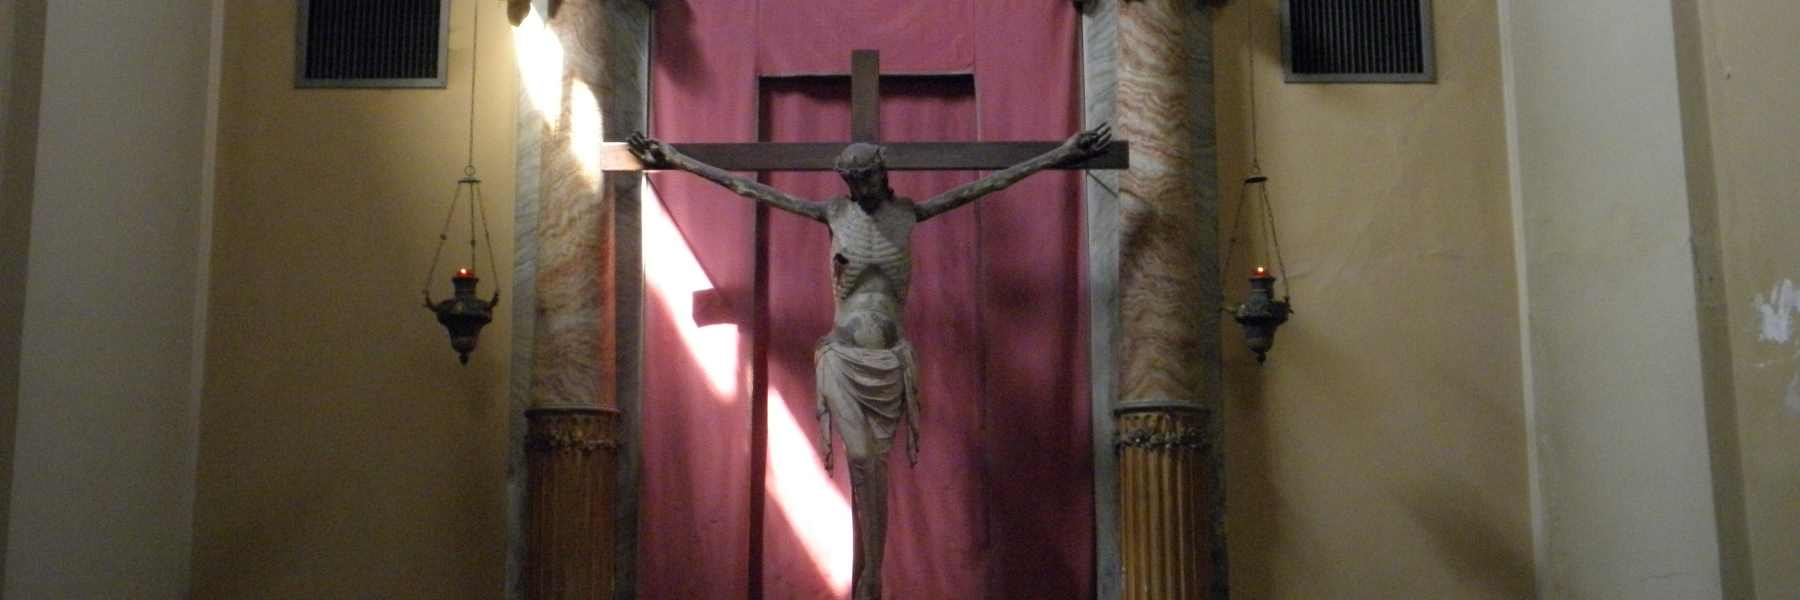 Crucifix en bois de l'Eglise de Suffrage